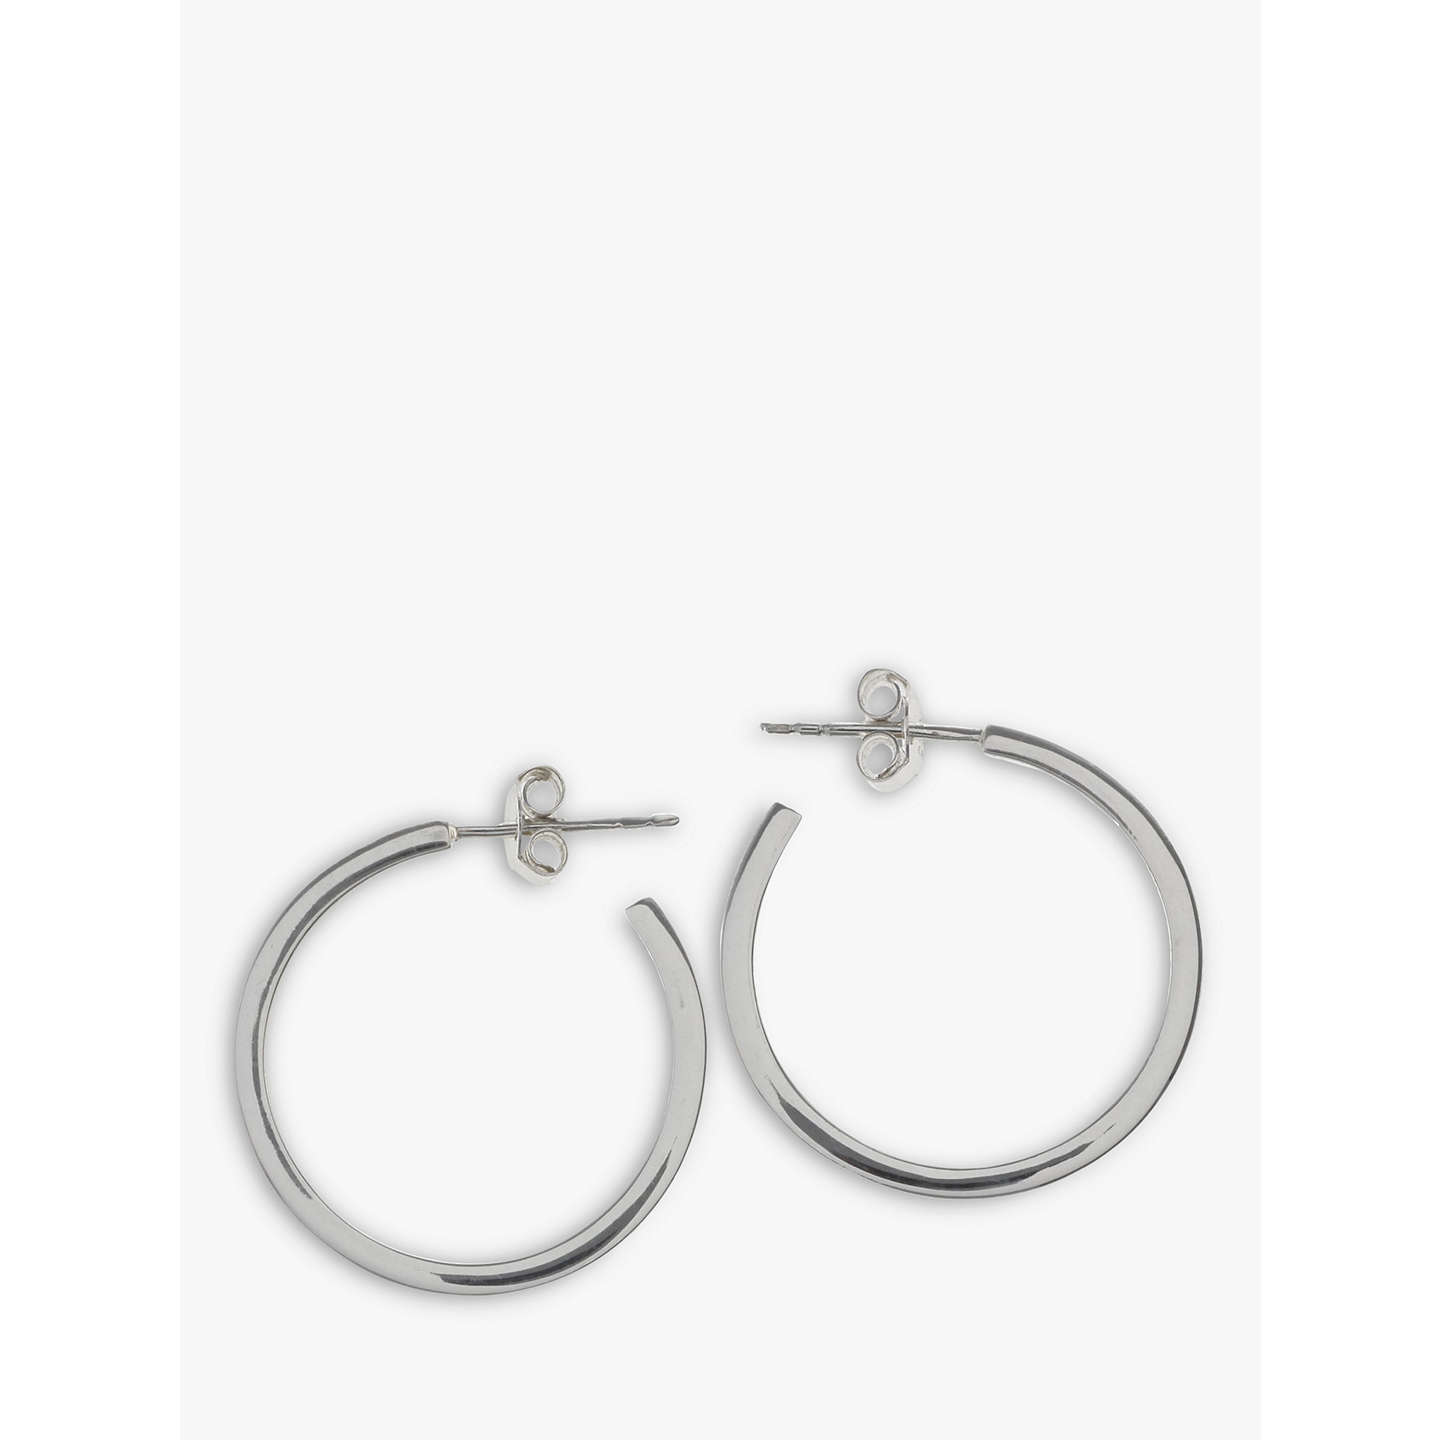 jewellery hammered resize sterling hook orba silver auree teardrop earrings